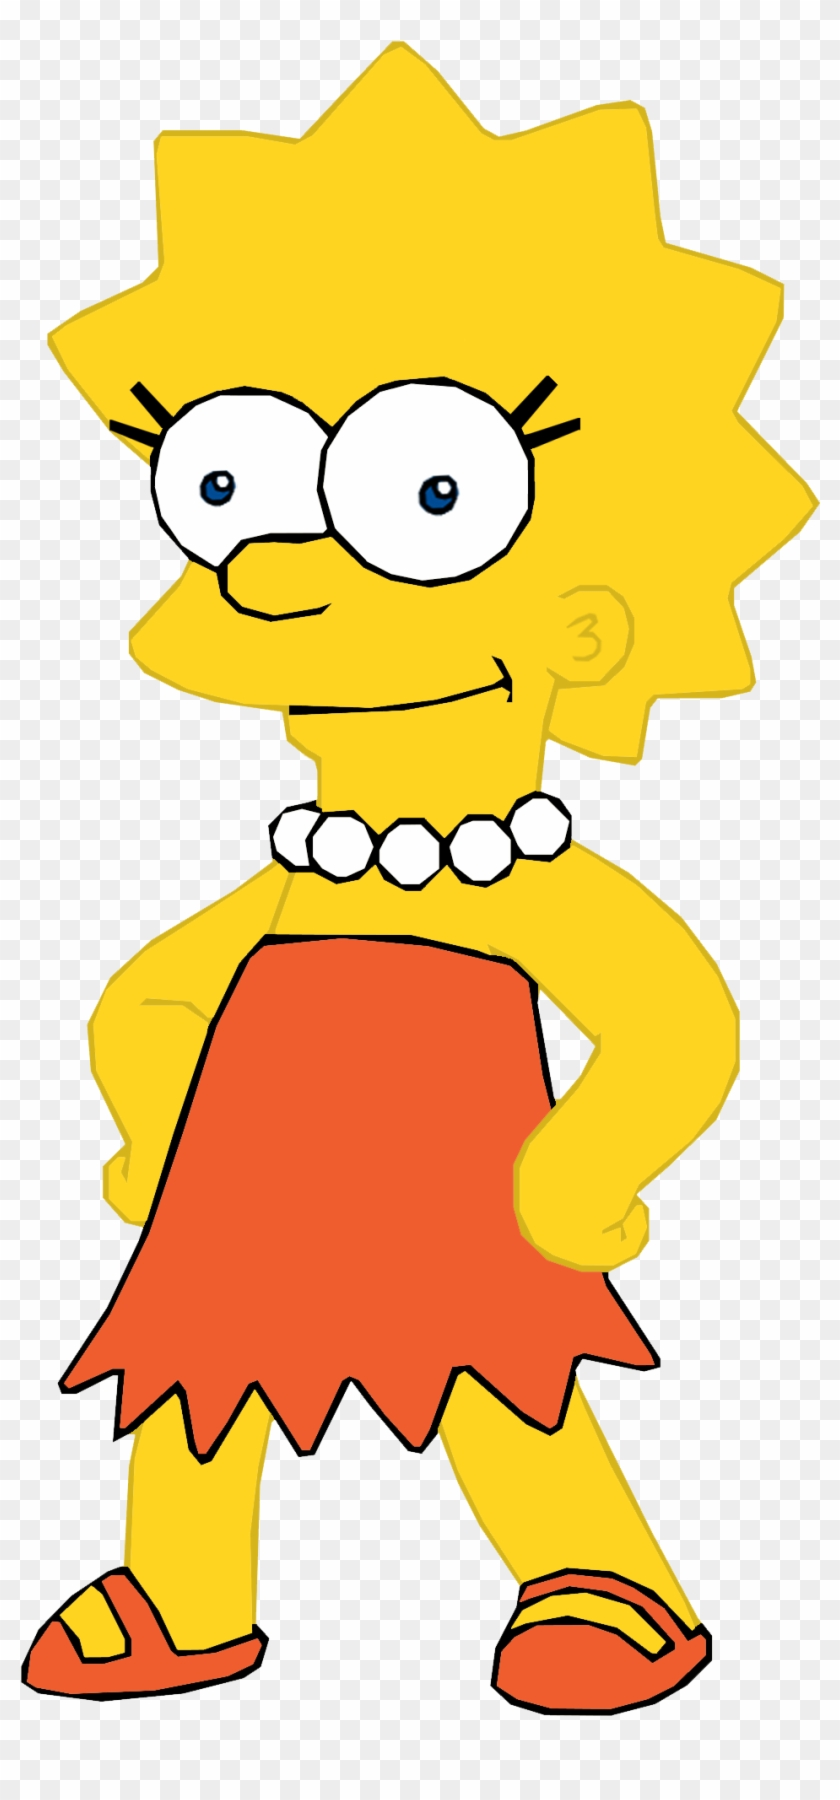 Lisa Simpson In Pnf/milo Murphy's Law Style - Chris Griffin Lisa Simpson #650471